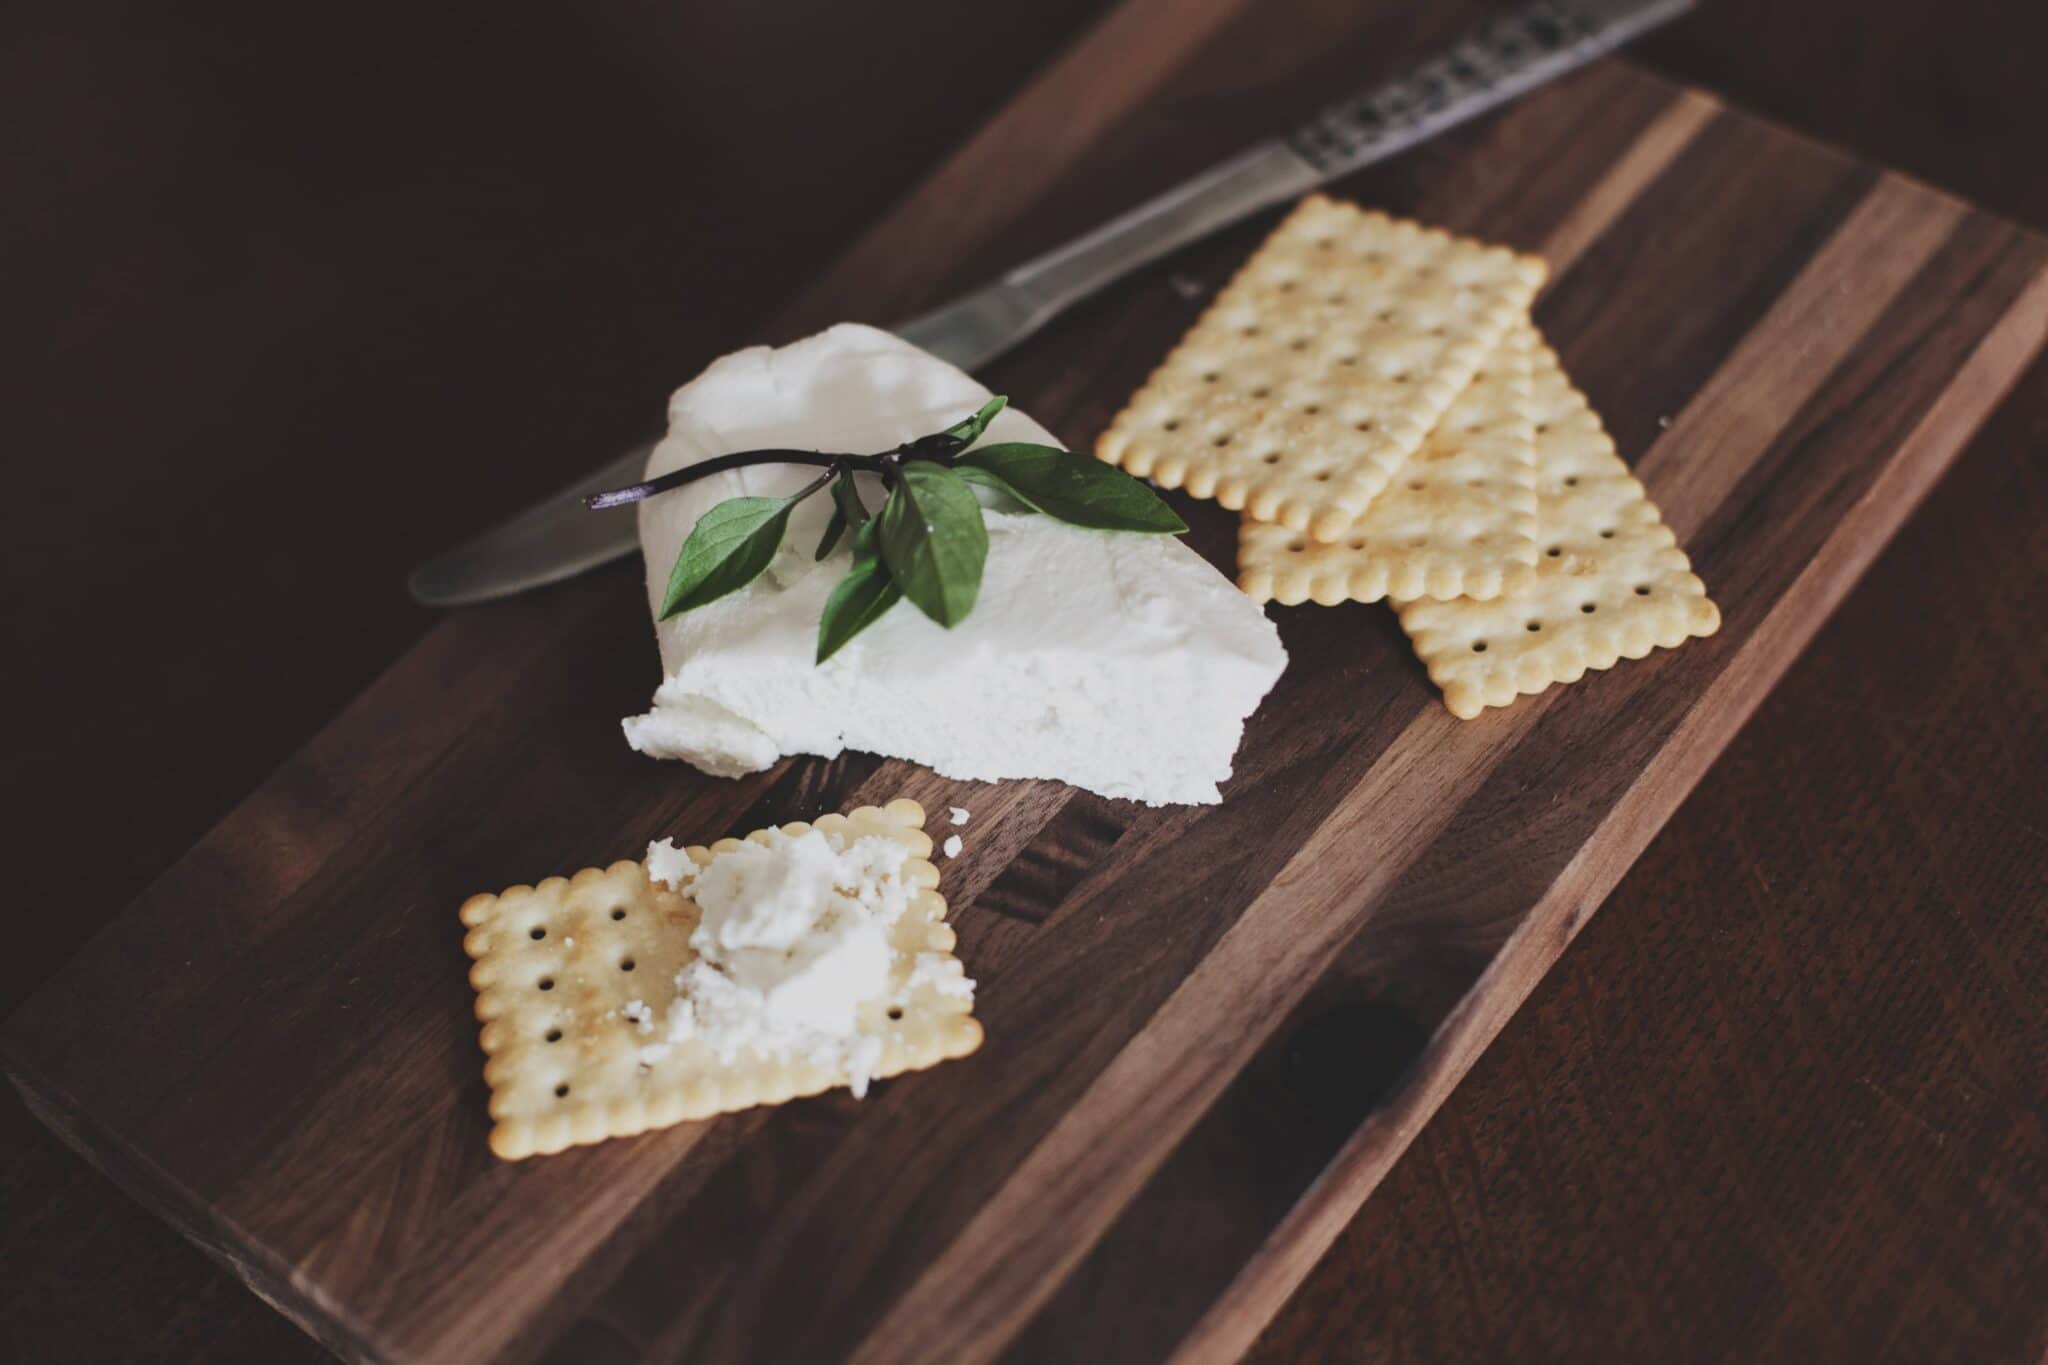 Crackers are the plainner snacks to serve with whisky